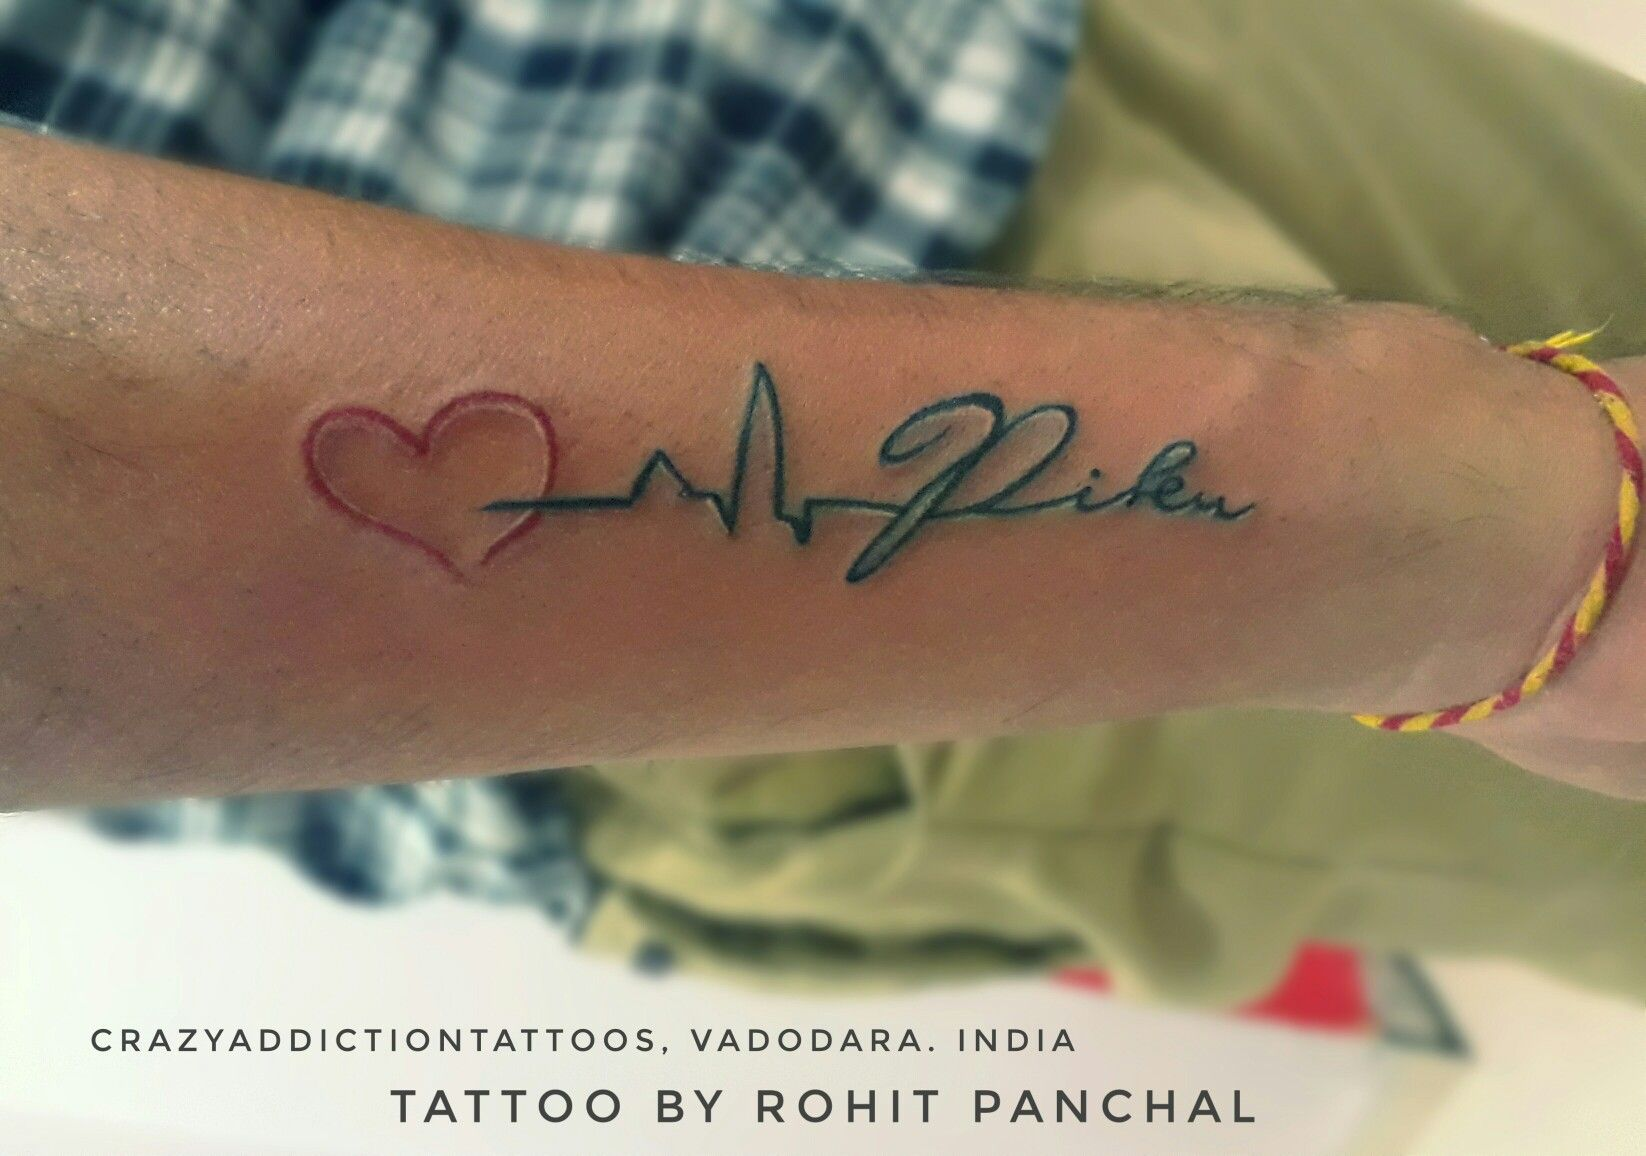 ccac7a2b4 Heartbeat with pinku name Tattoo by Rohit Panchal at CrazyAddictionTattoos